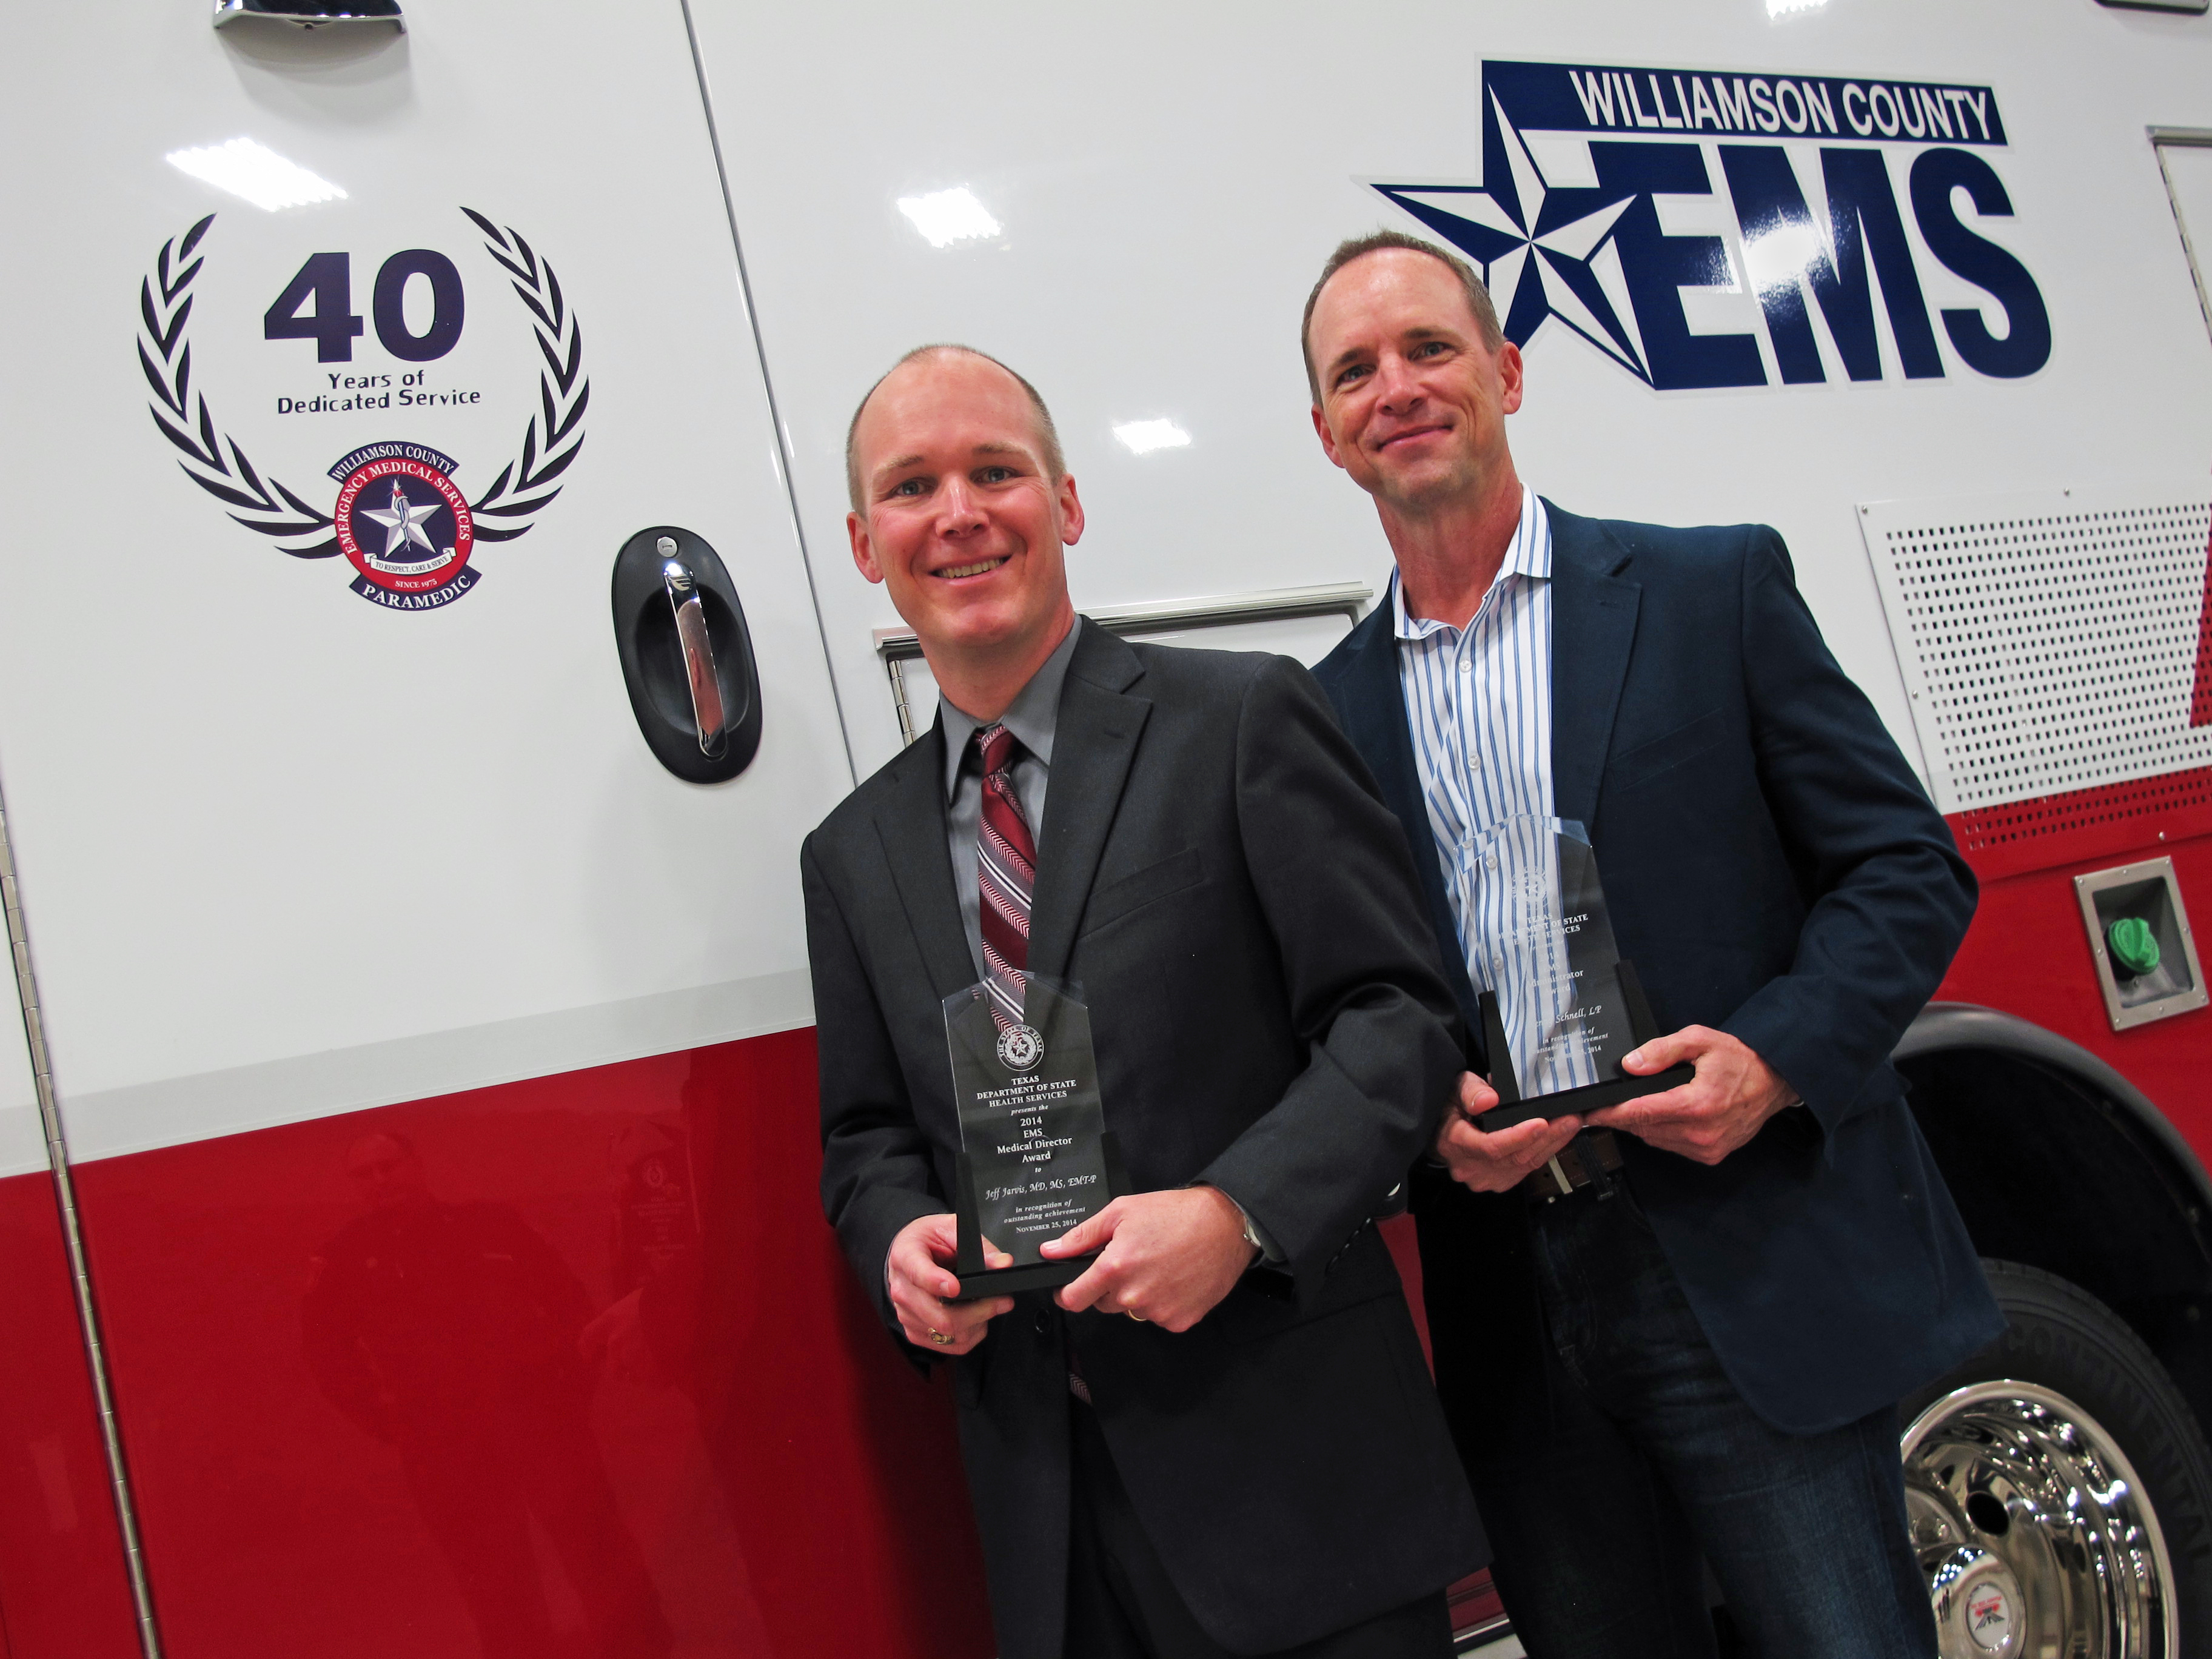 Dr. Jeff Jarvis and Kenny Schnell win awards.